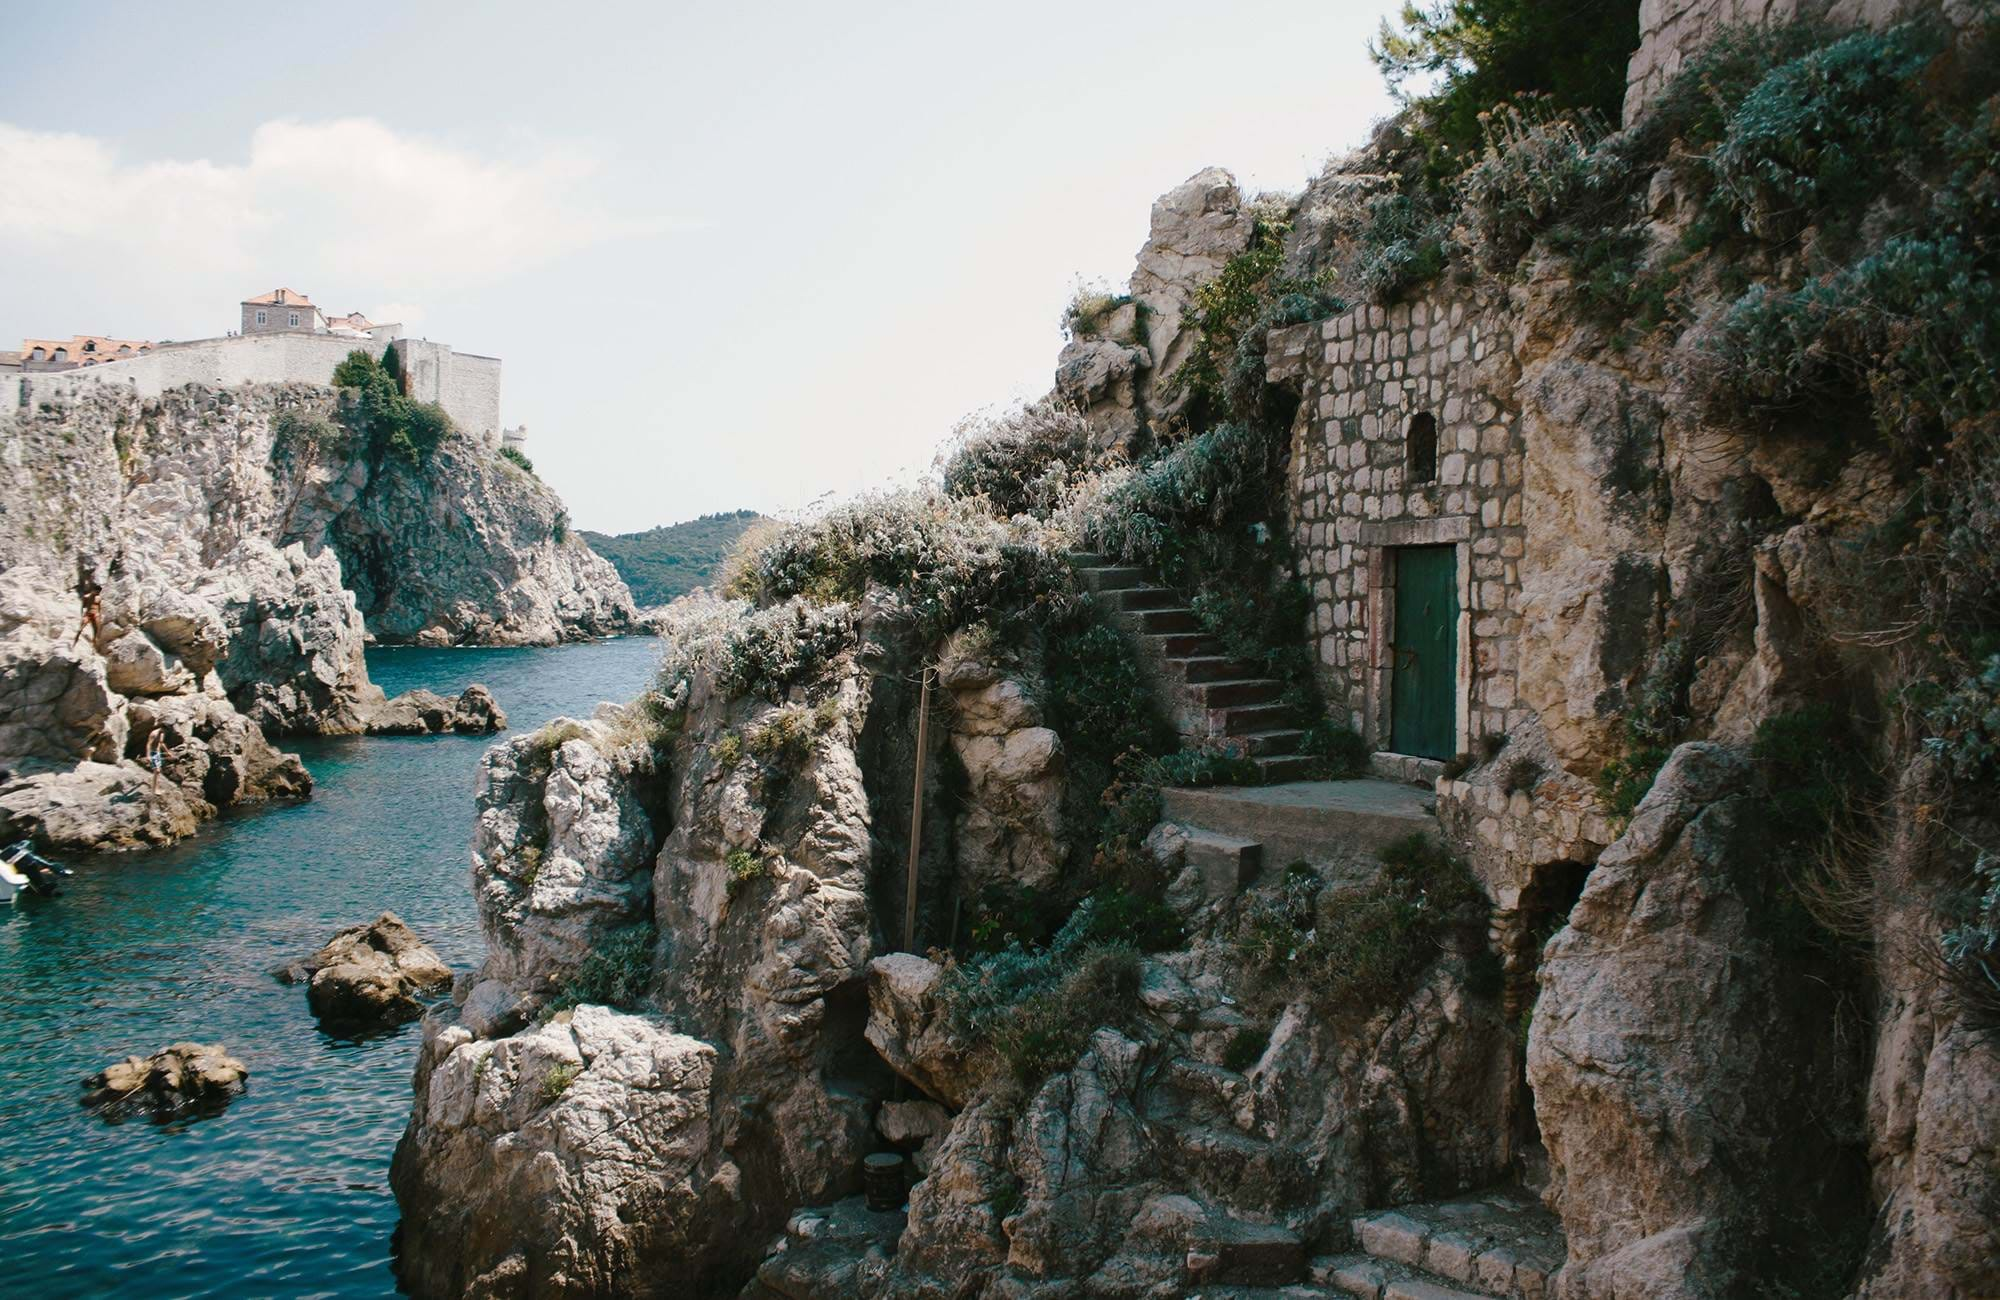 enjoy the beautiful surroundings along the adriatic coast